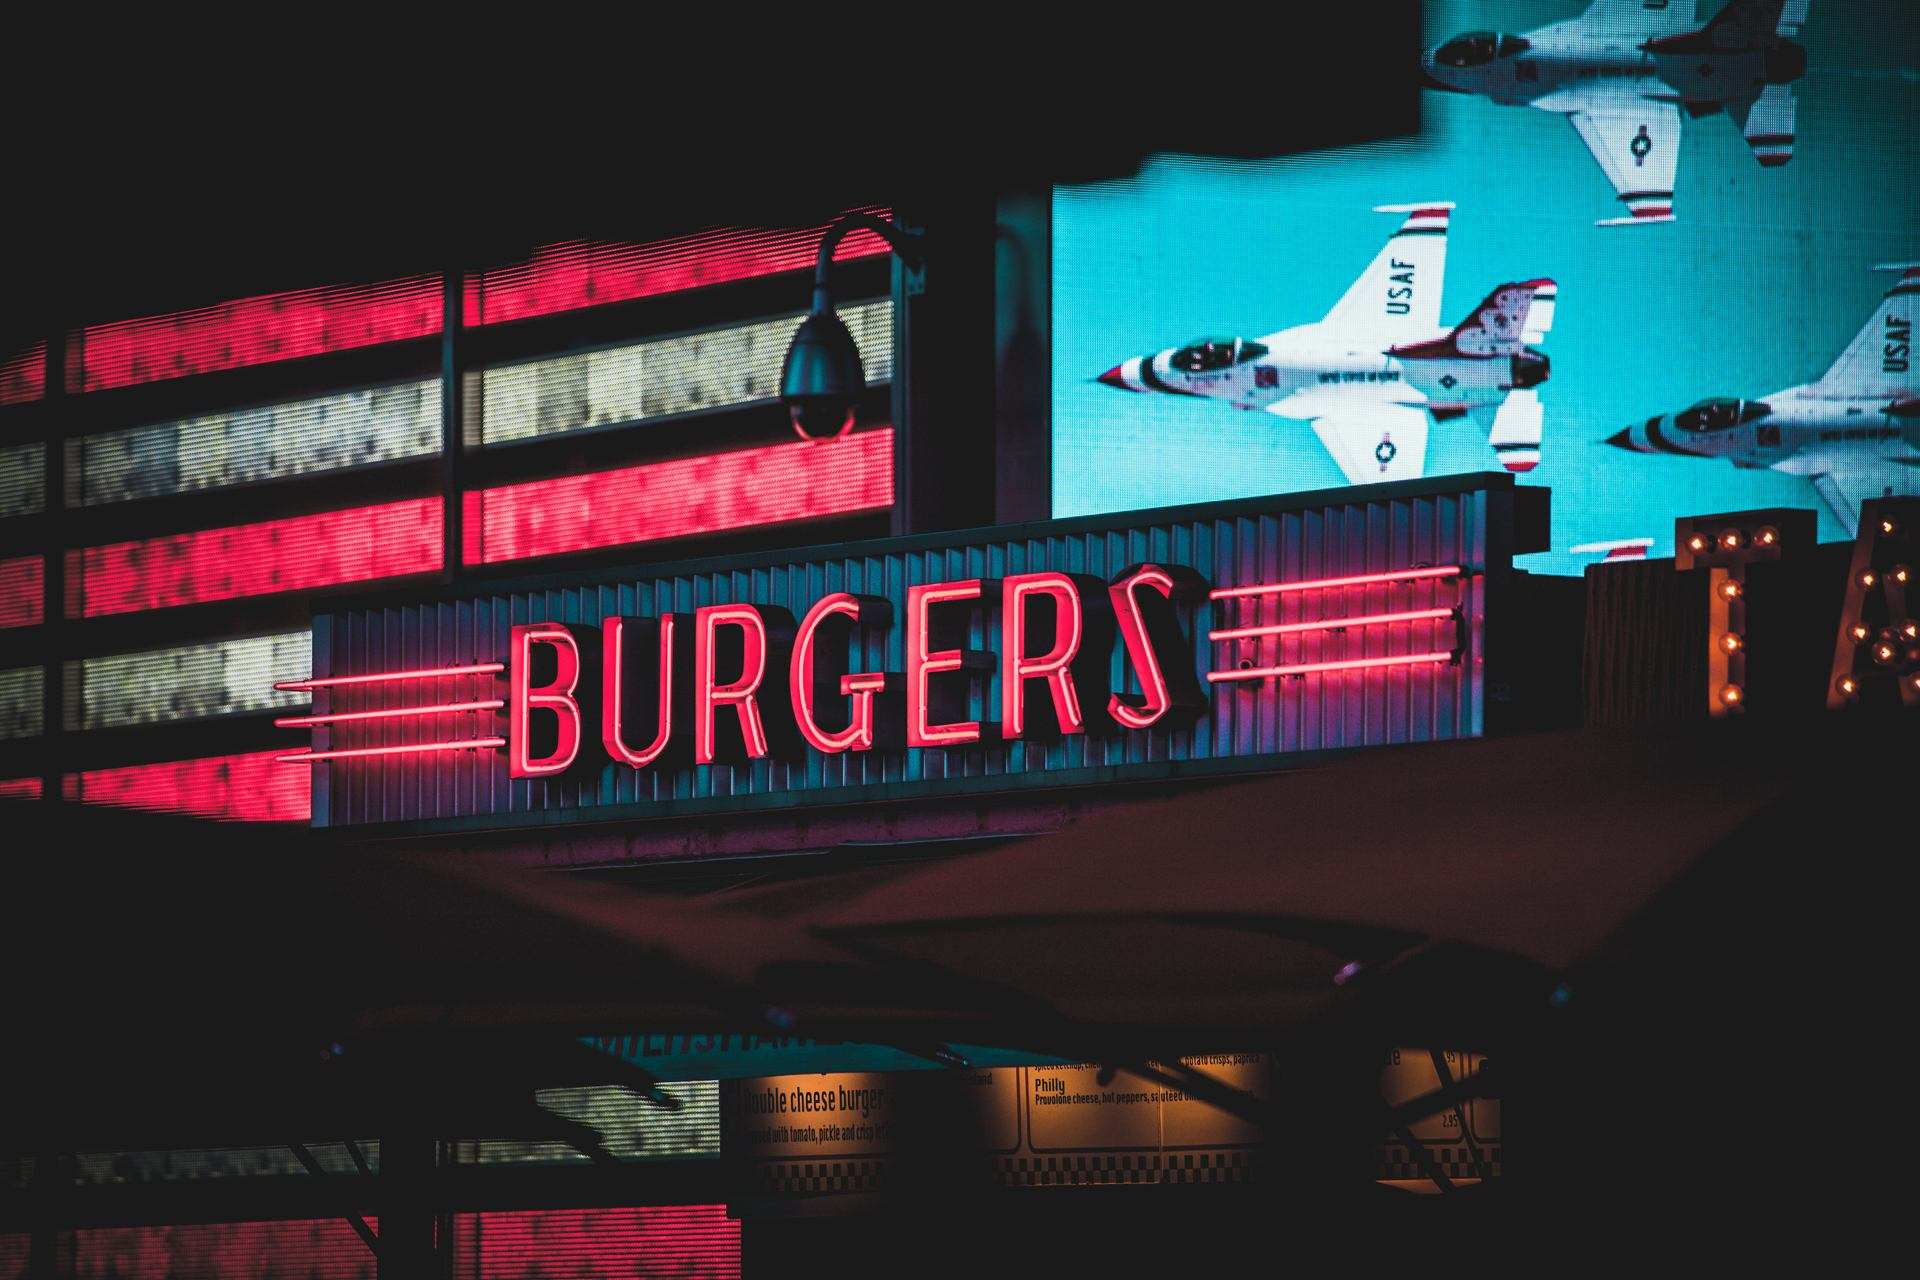 This is America - New York burgers